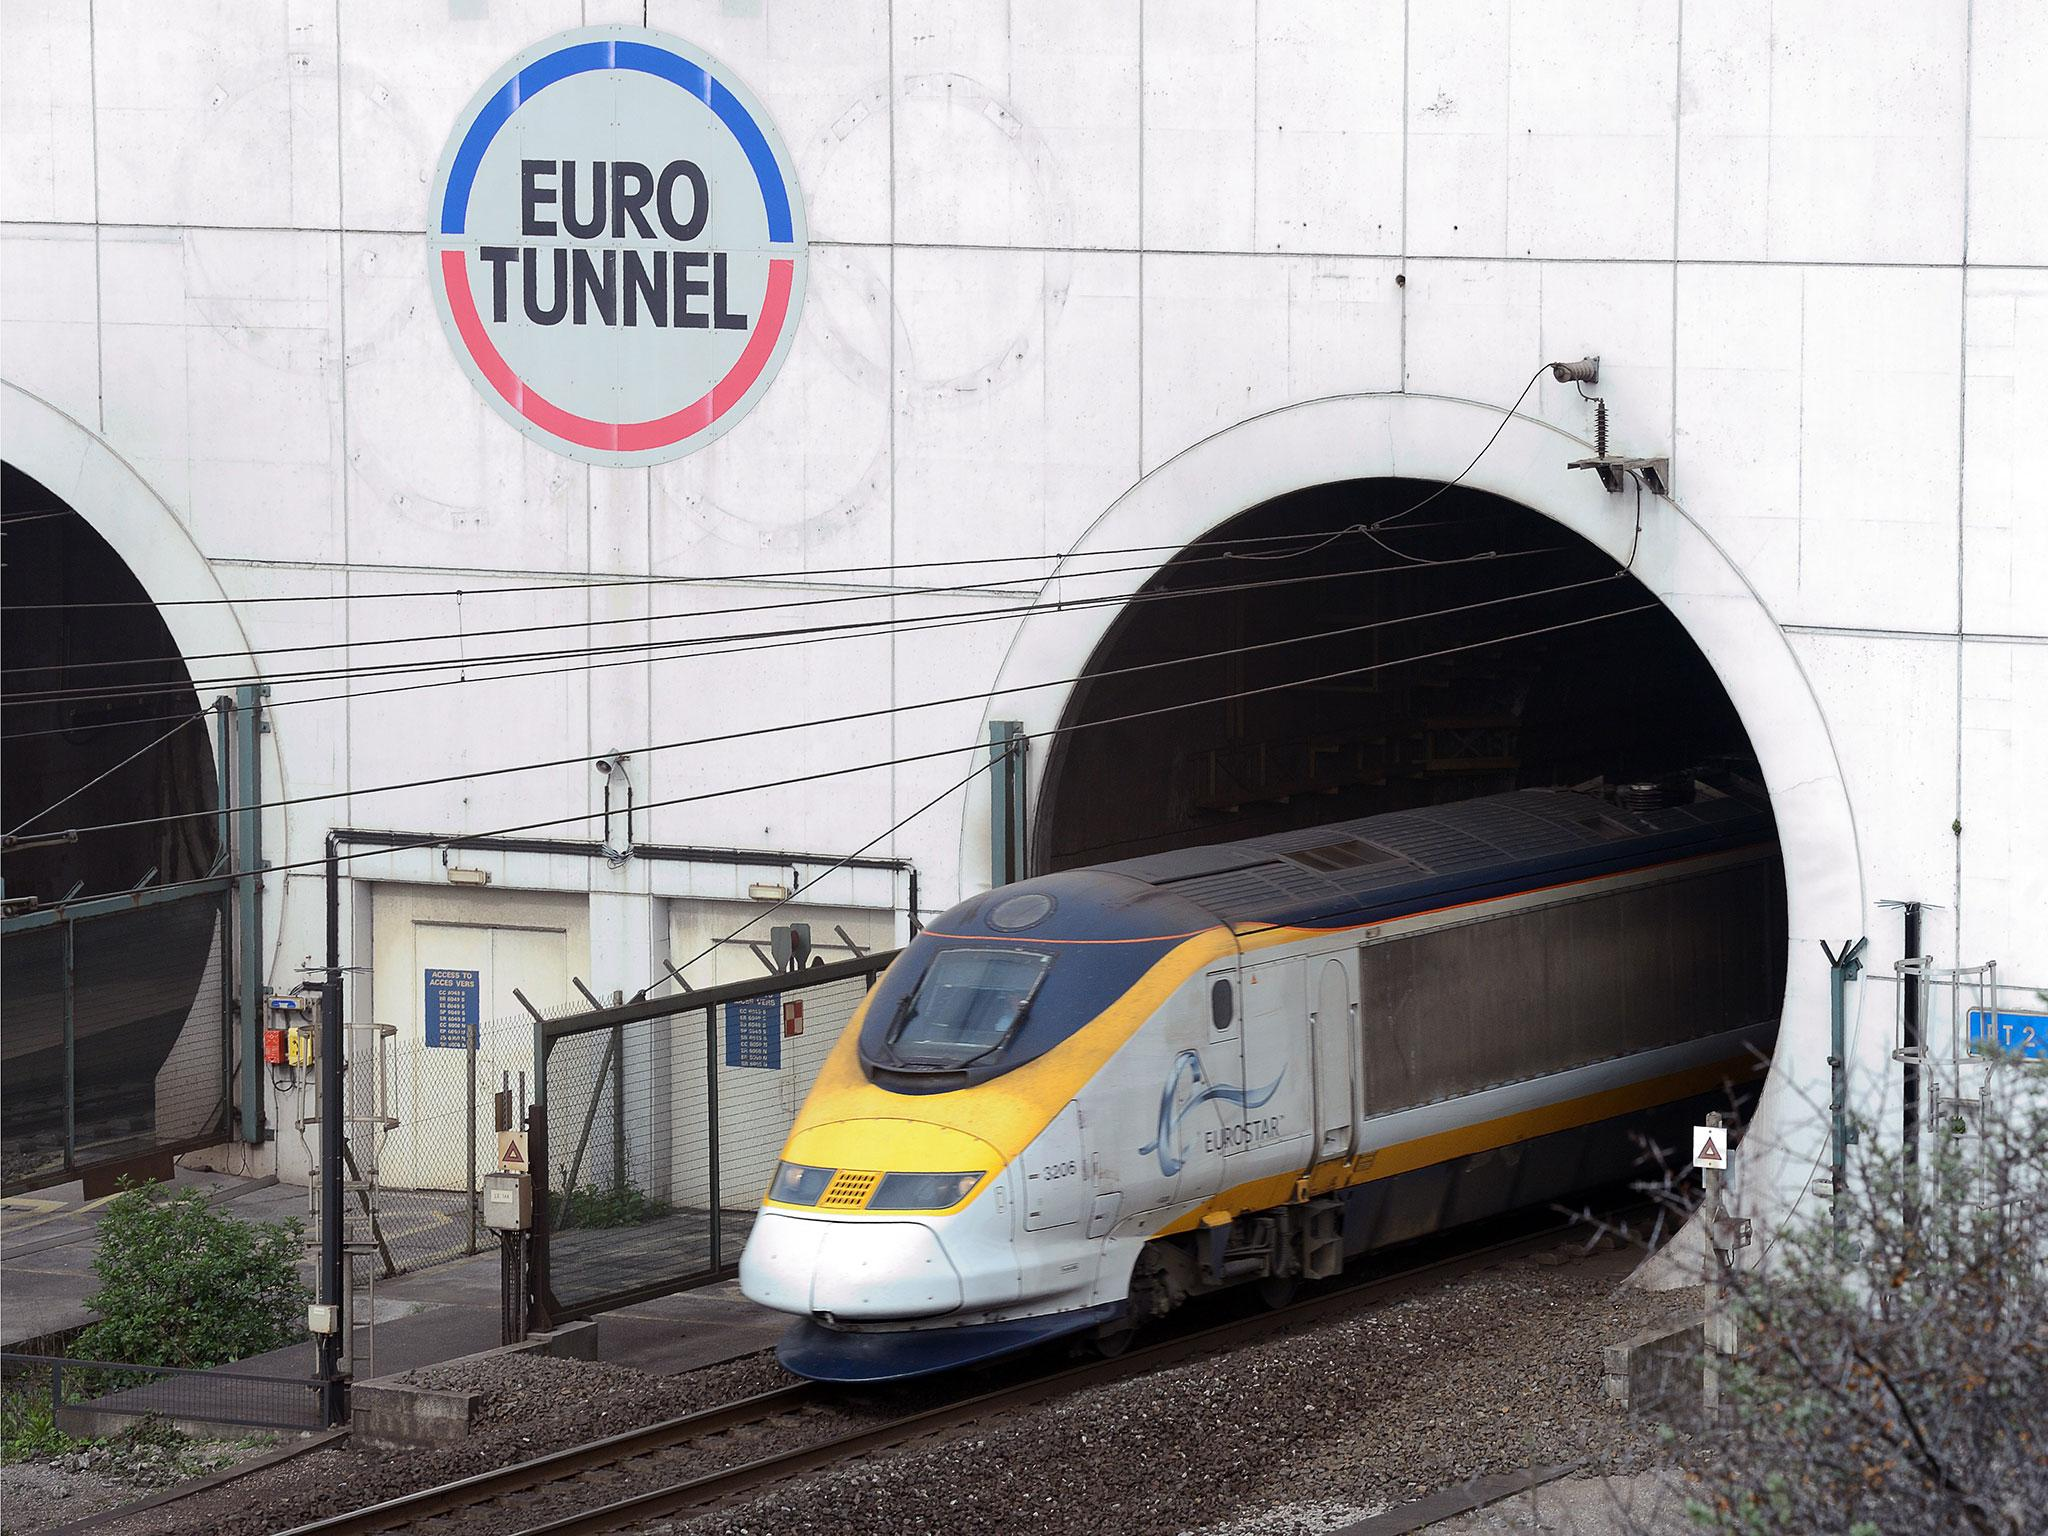 Eurotunnel - Case Study - Markettiers - broadcast specialist creative agency